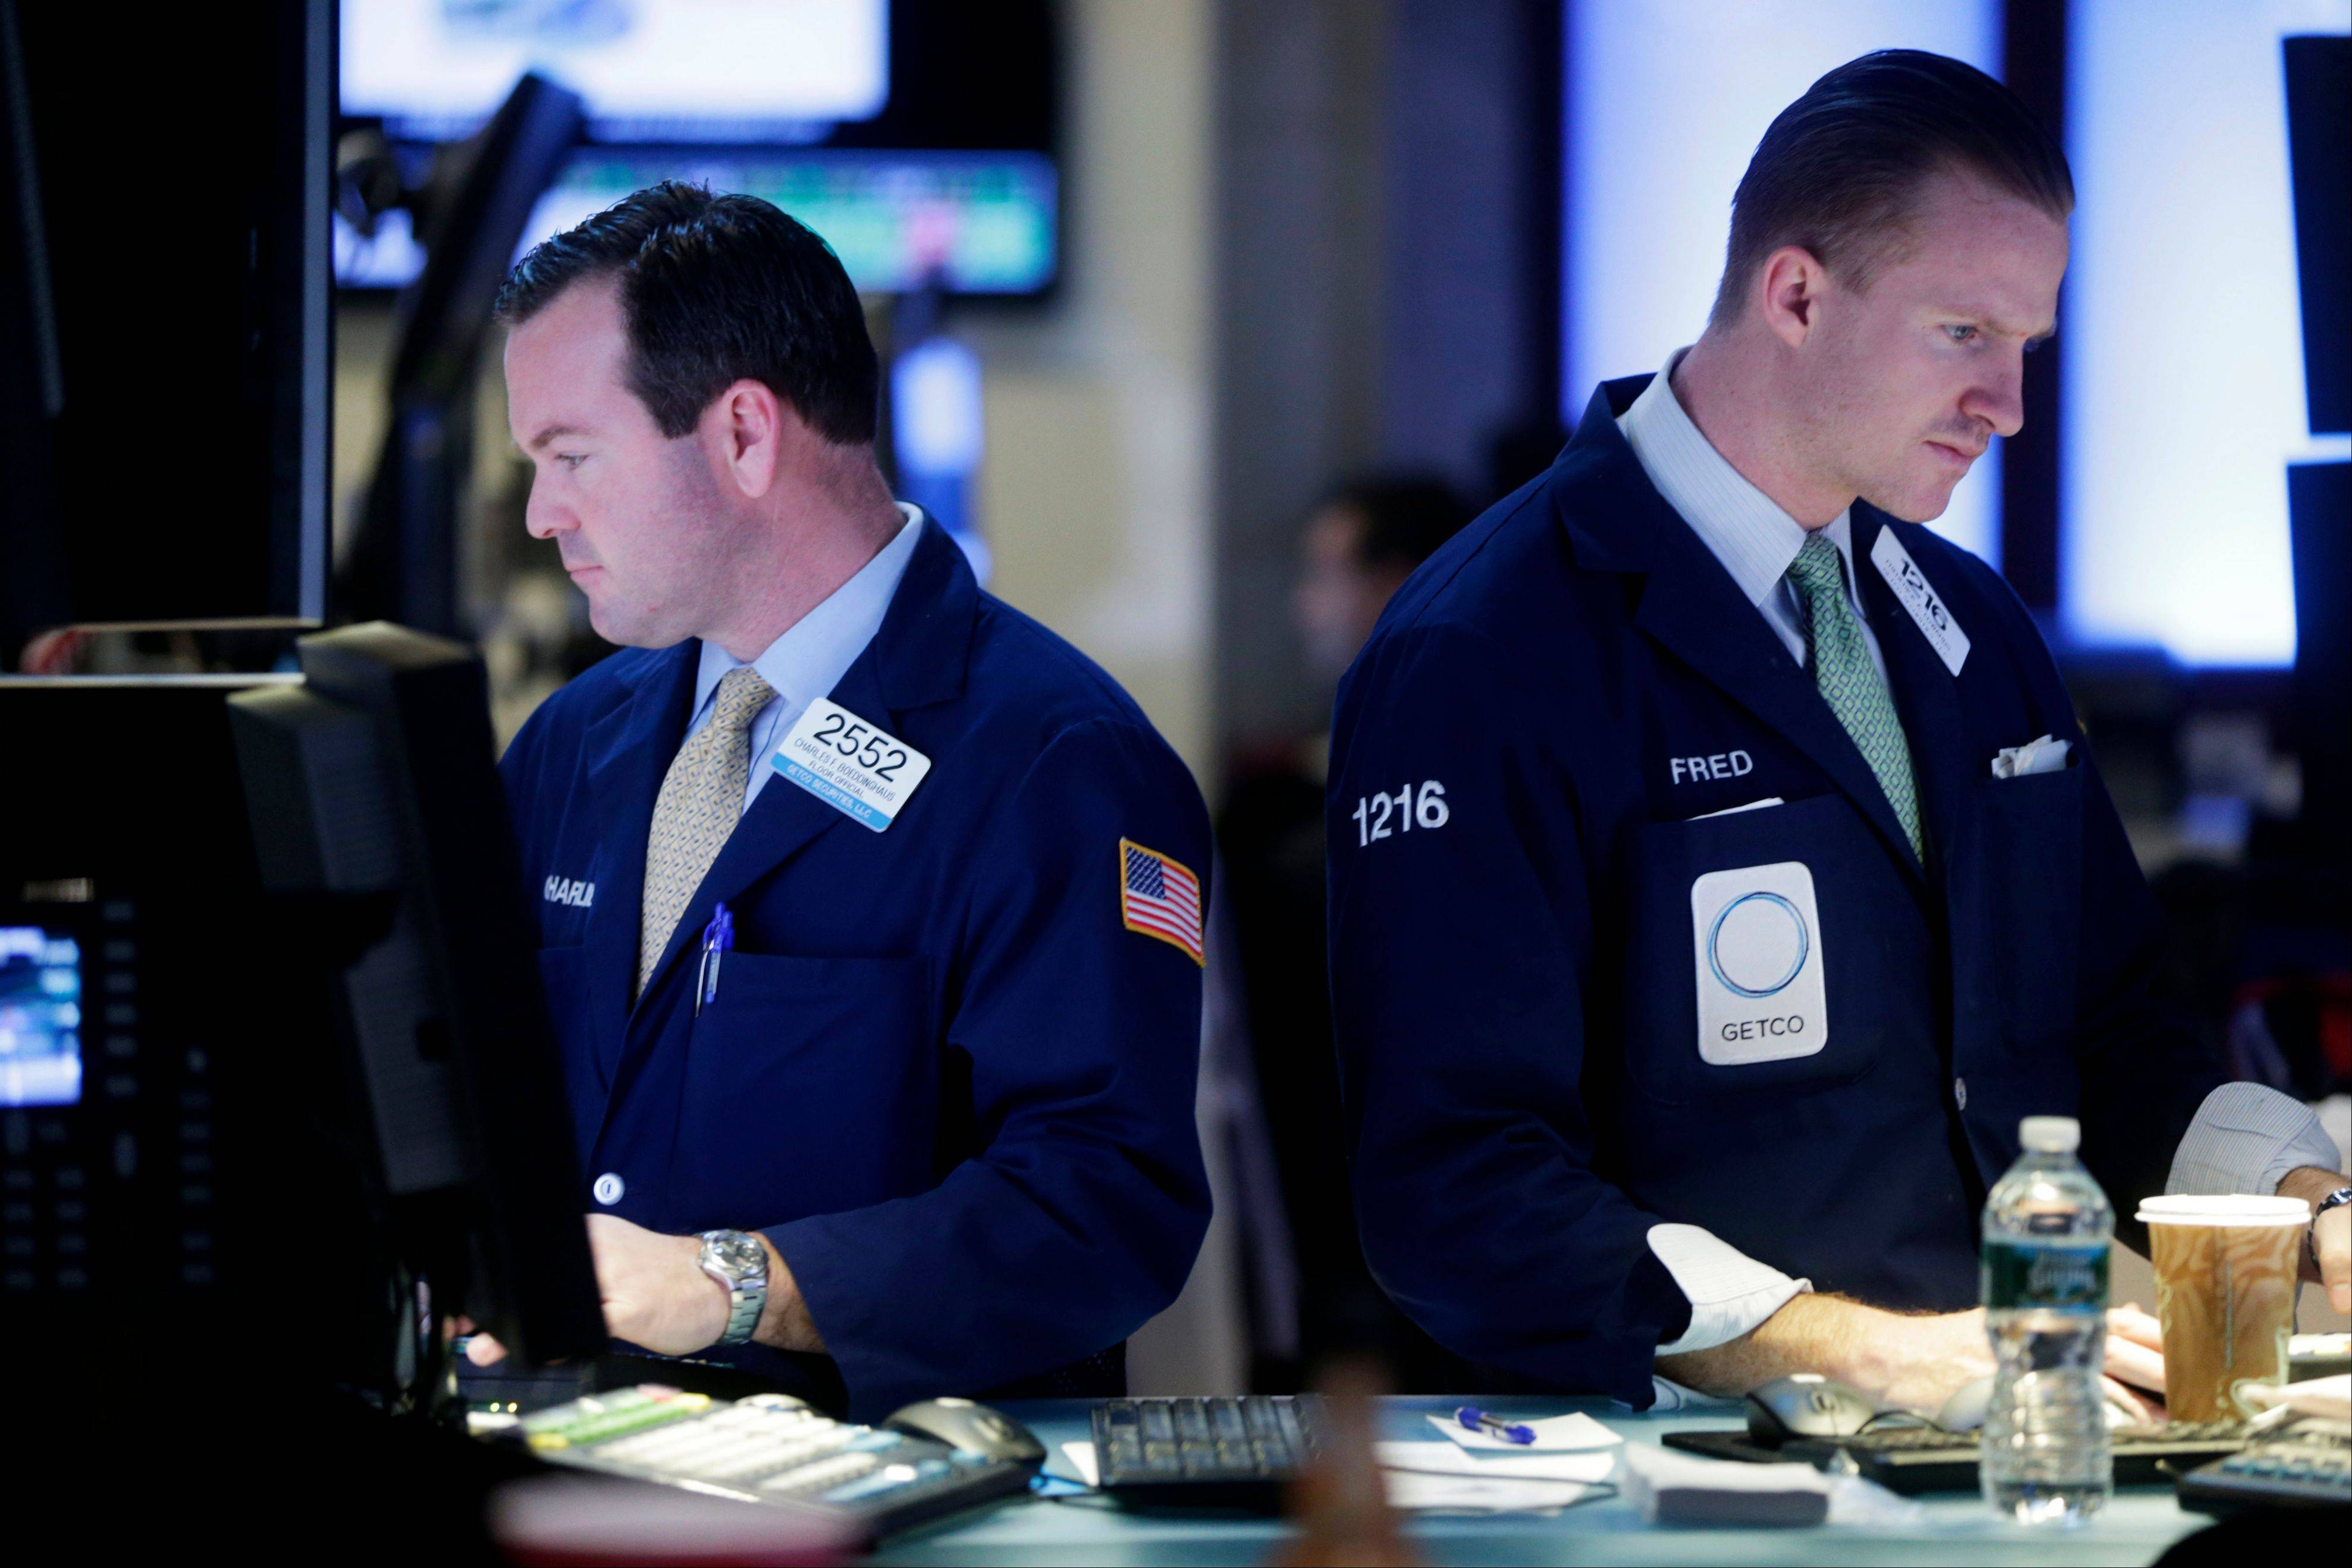 U.S. stocks rose, giving the Standard & Poor�s 500 Index its biggest gain in more than a year, as lawmakers passed a bill averting spending cuts and tax increases threatening a recovery in the world�s biggest economy.